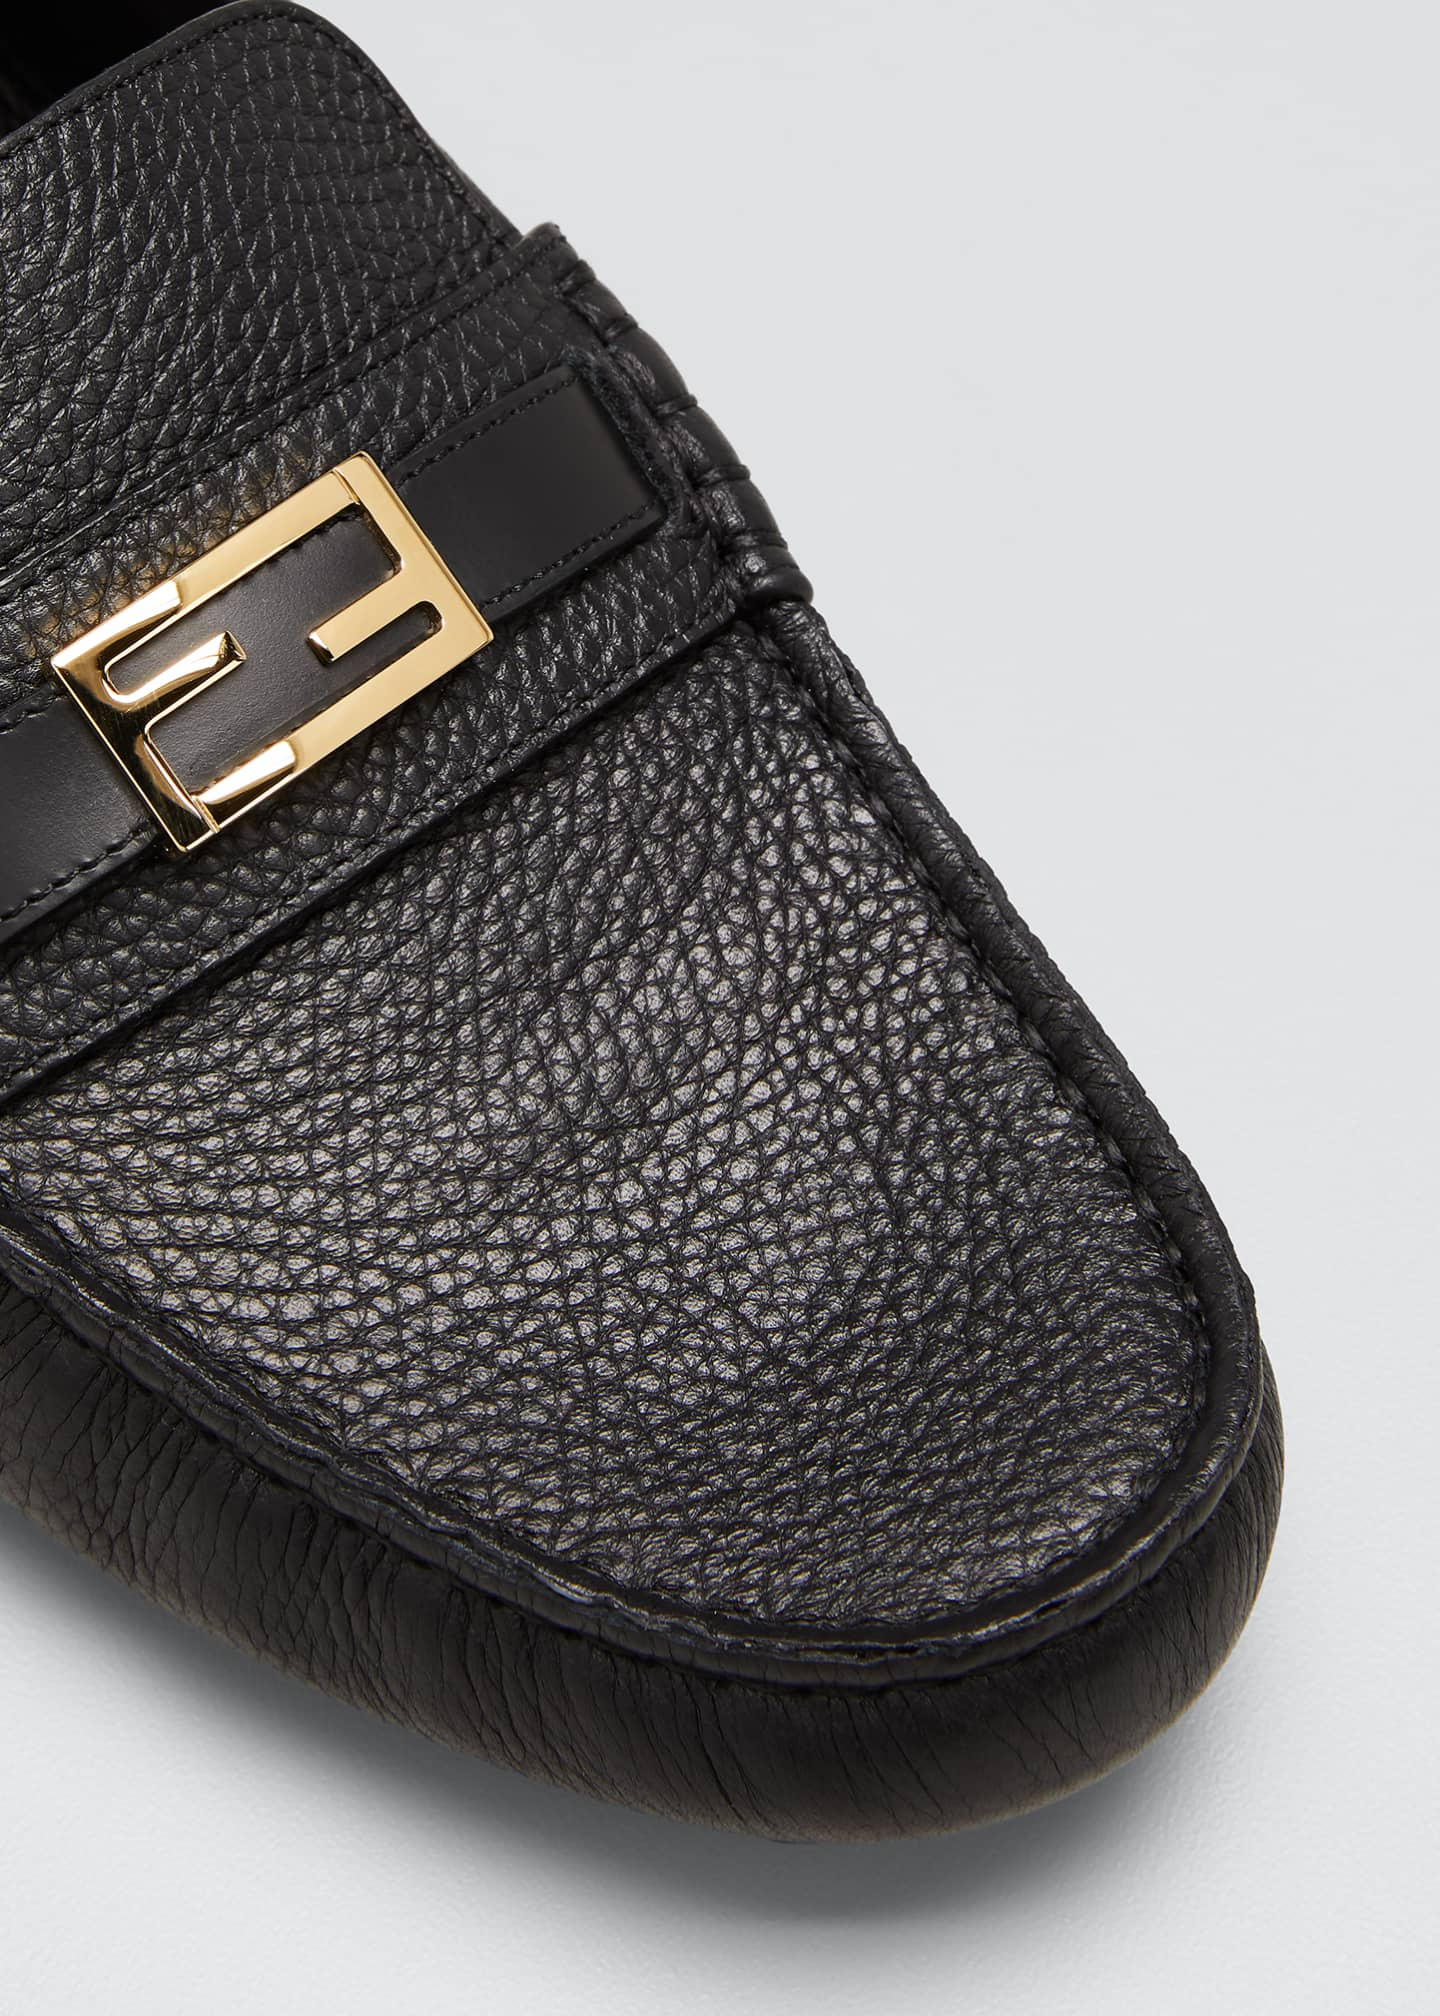 Image 3 of 3: Men's Pebbled Leather Drivers w/ FF Buckle Strap